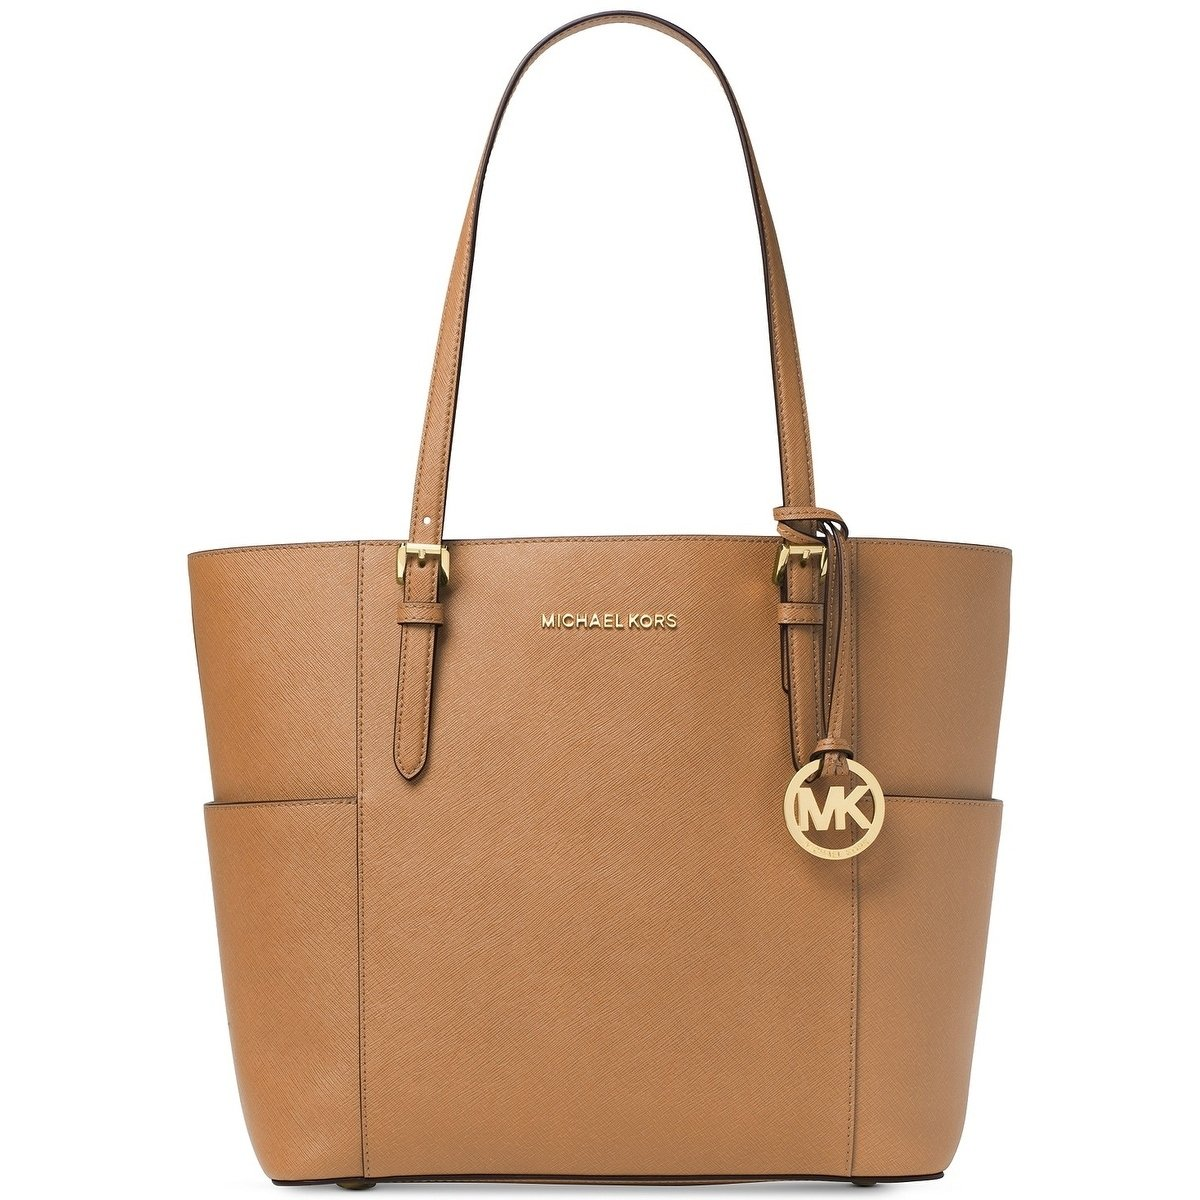 Michael Kors Jet Set Travel Large Leather Tote Acorn Brown # 30T6GTVT3L